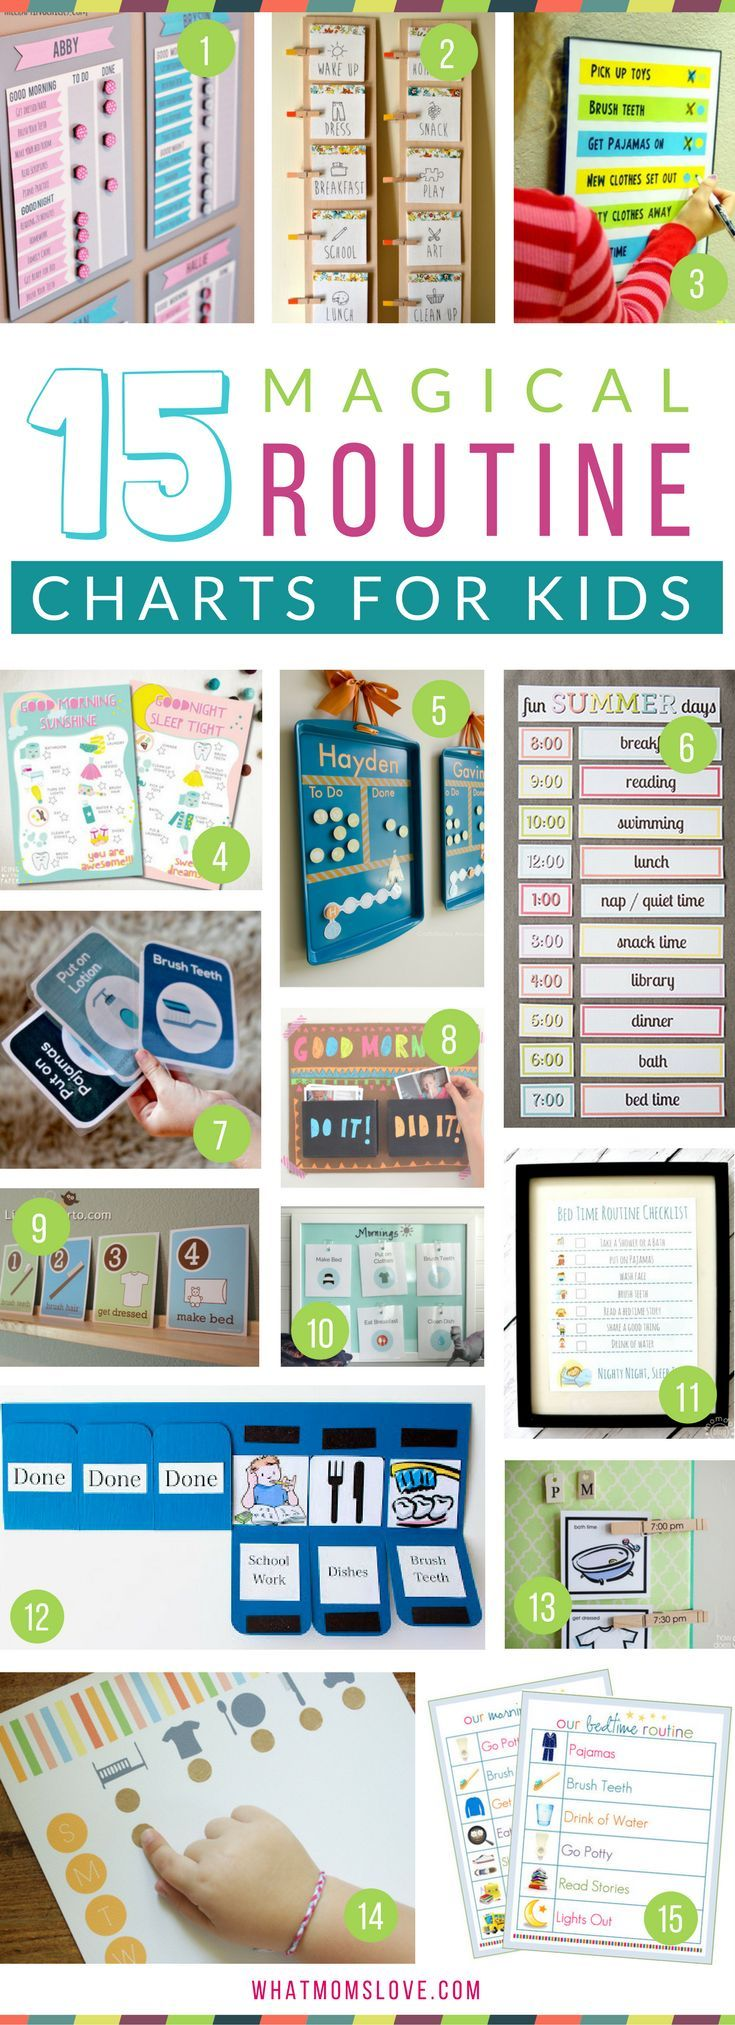 Morning and Bedtime Daily Routine Charts for Kids - perfect for keeping them on a schedule over the summer or for back to school. DIY and printable routine charts to help teach kids independence! Plus more tips, tricks and hacks to survive Summer with your kids from http://whatmomslove.com